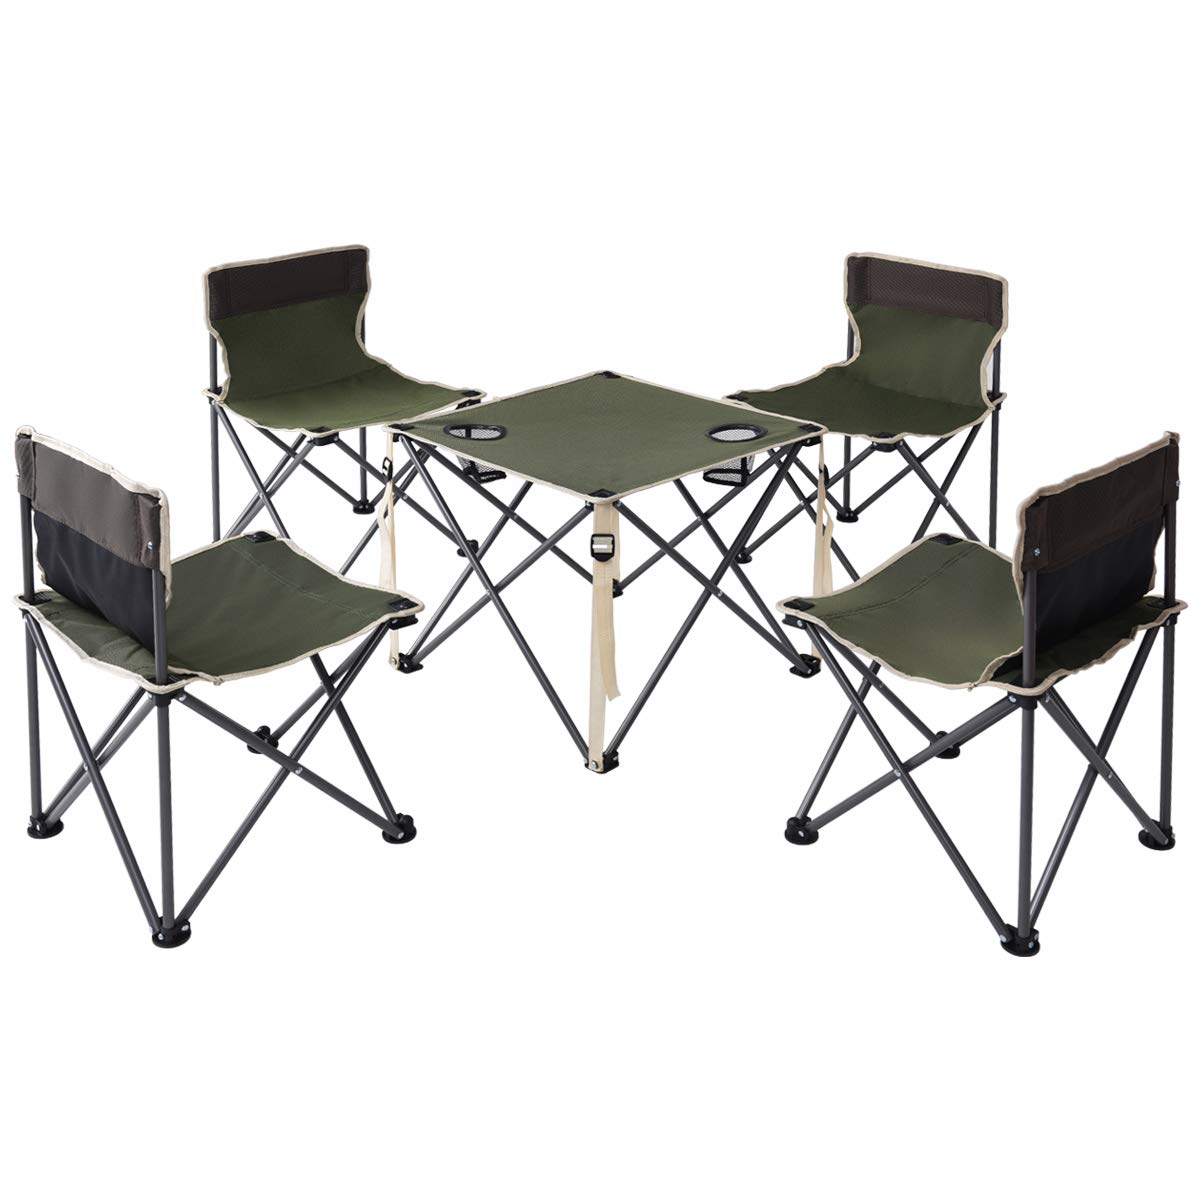 Giantex Portable Folding Camping Table Chairs Set Outdoor Patio Camp Beach Picnic with Cup Holder & Carrying Bag (Green)